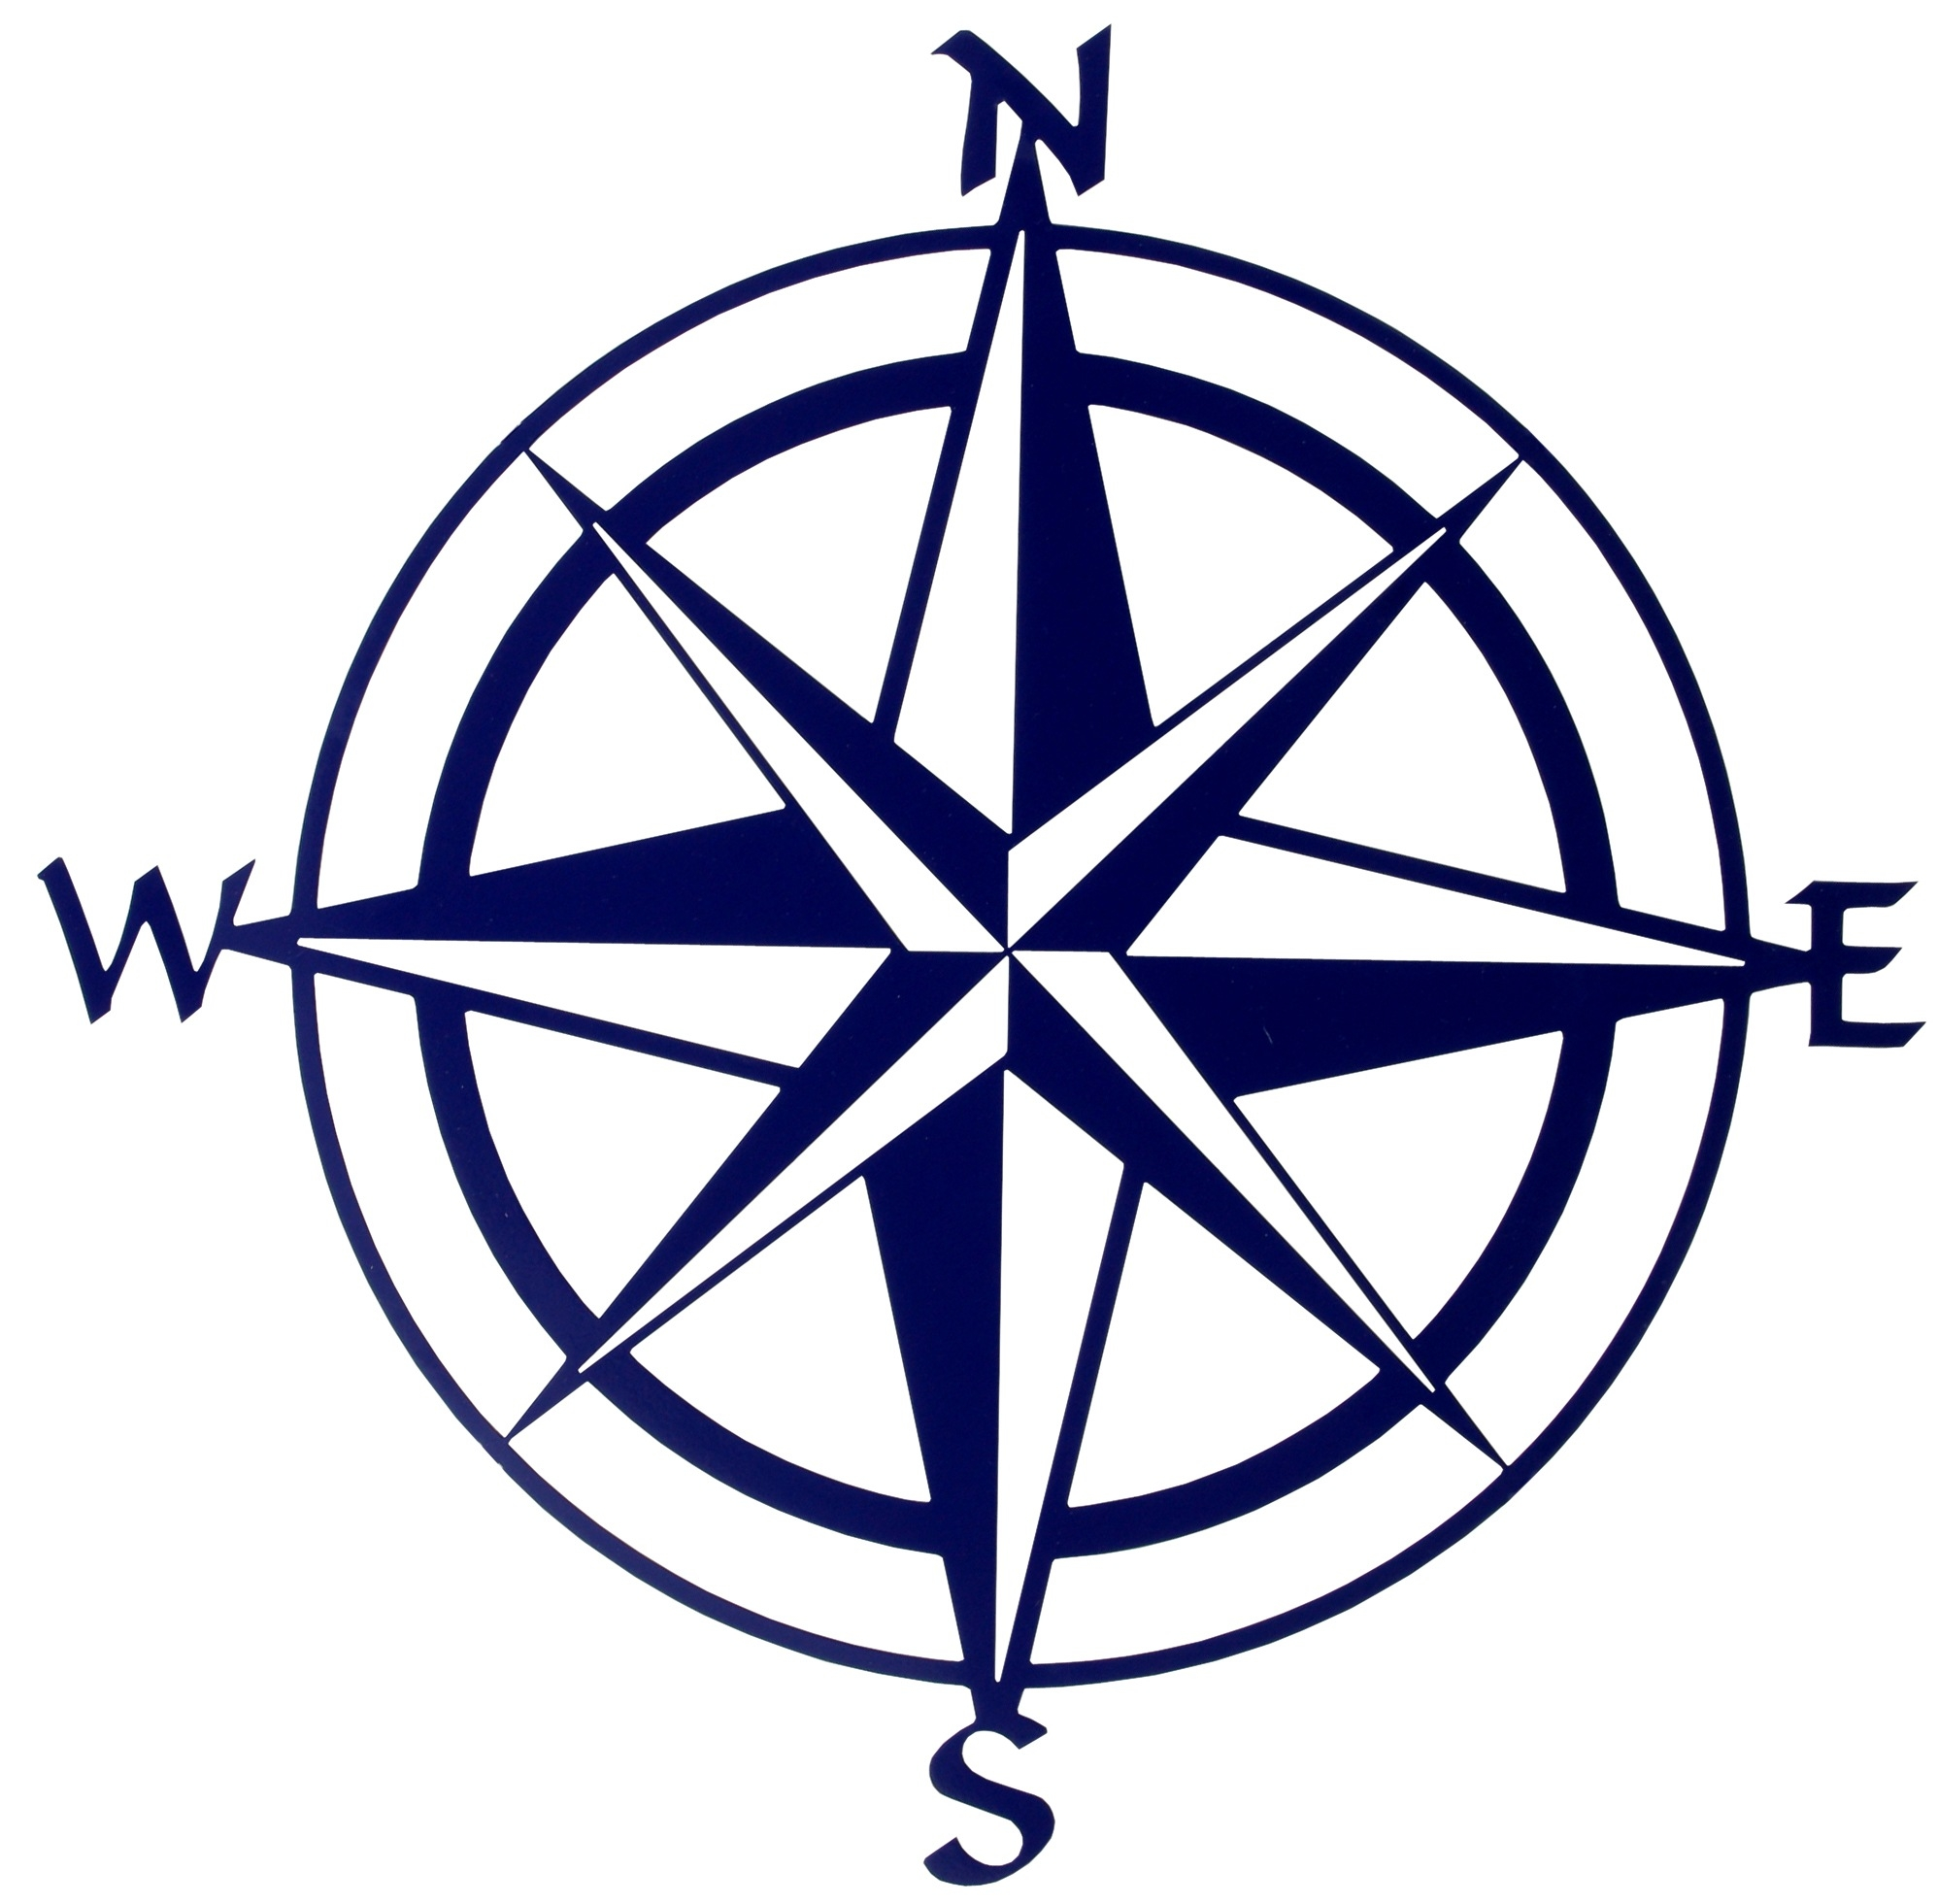 Compass clipart black and white picture black and white Compass Clipart Black And White – Pencil And In Color Compass within ... picture black and white